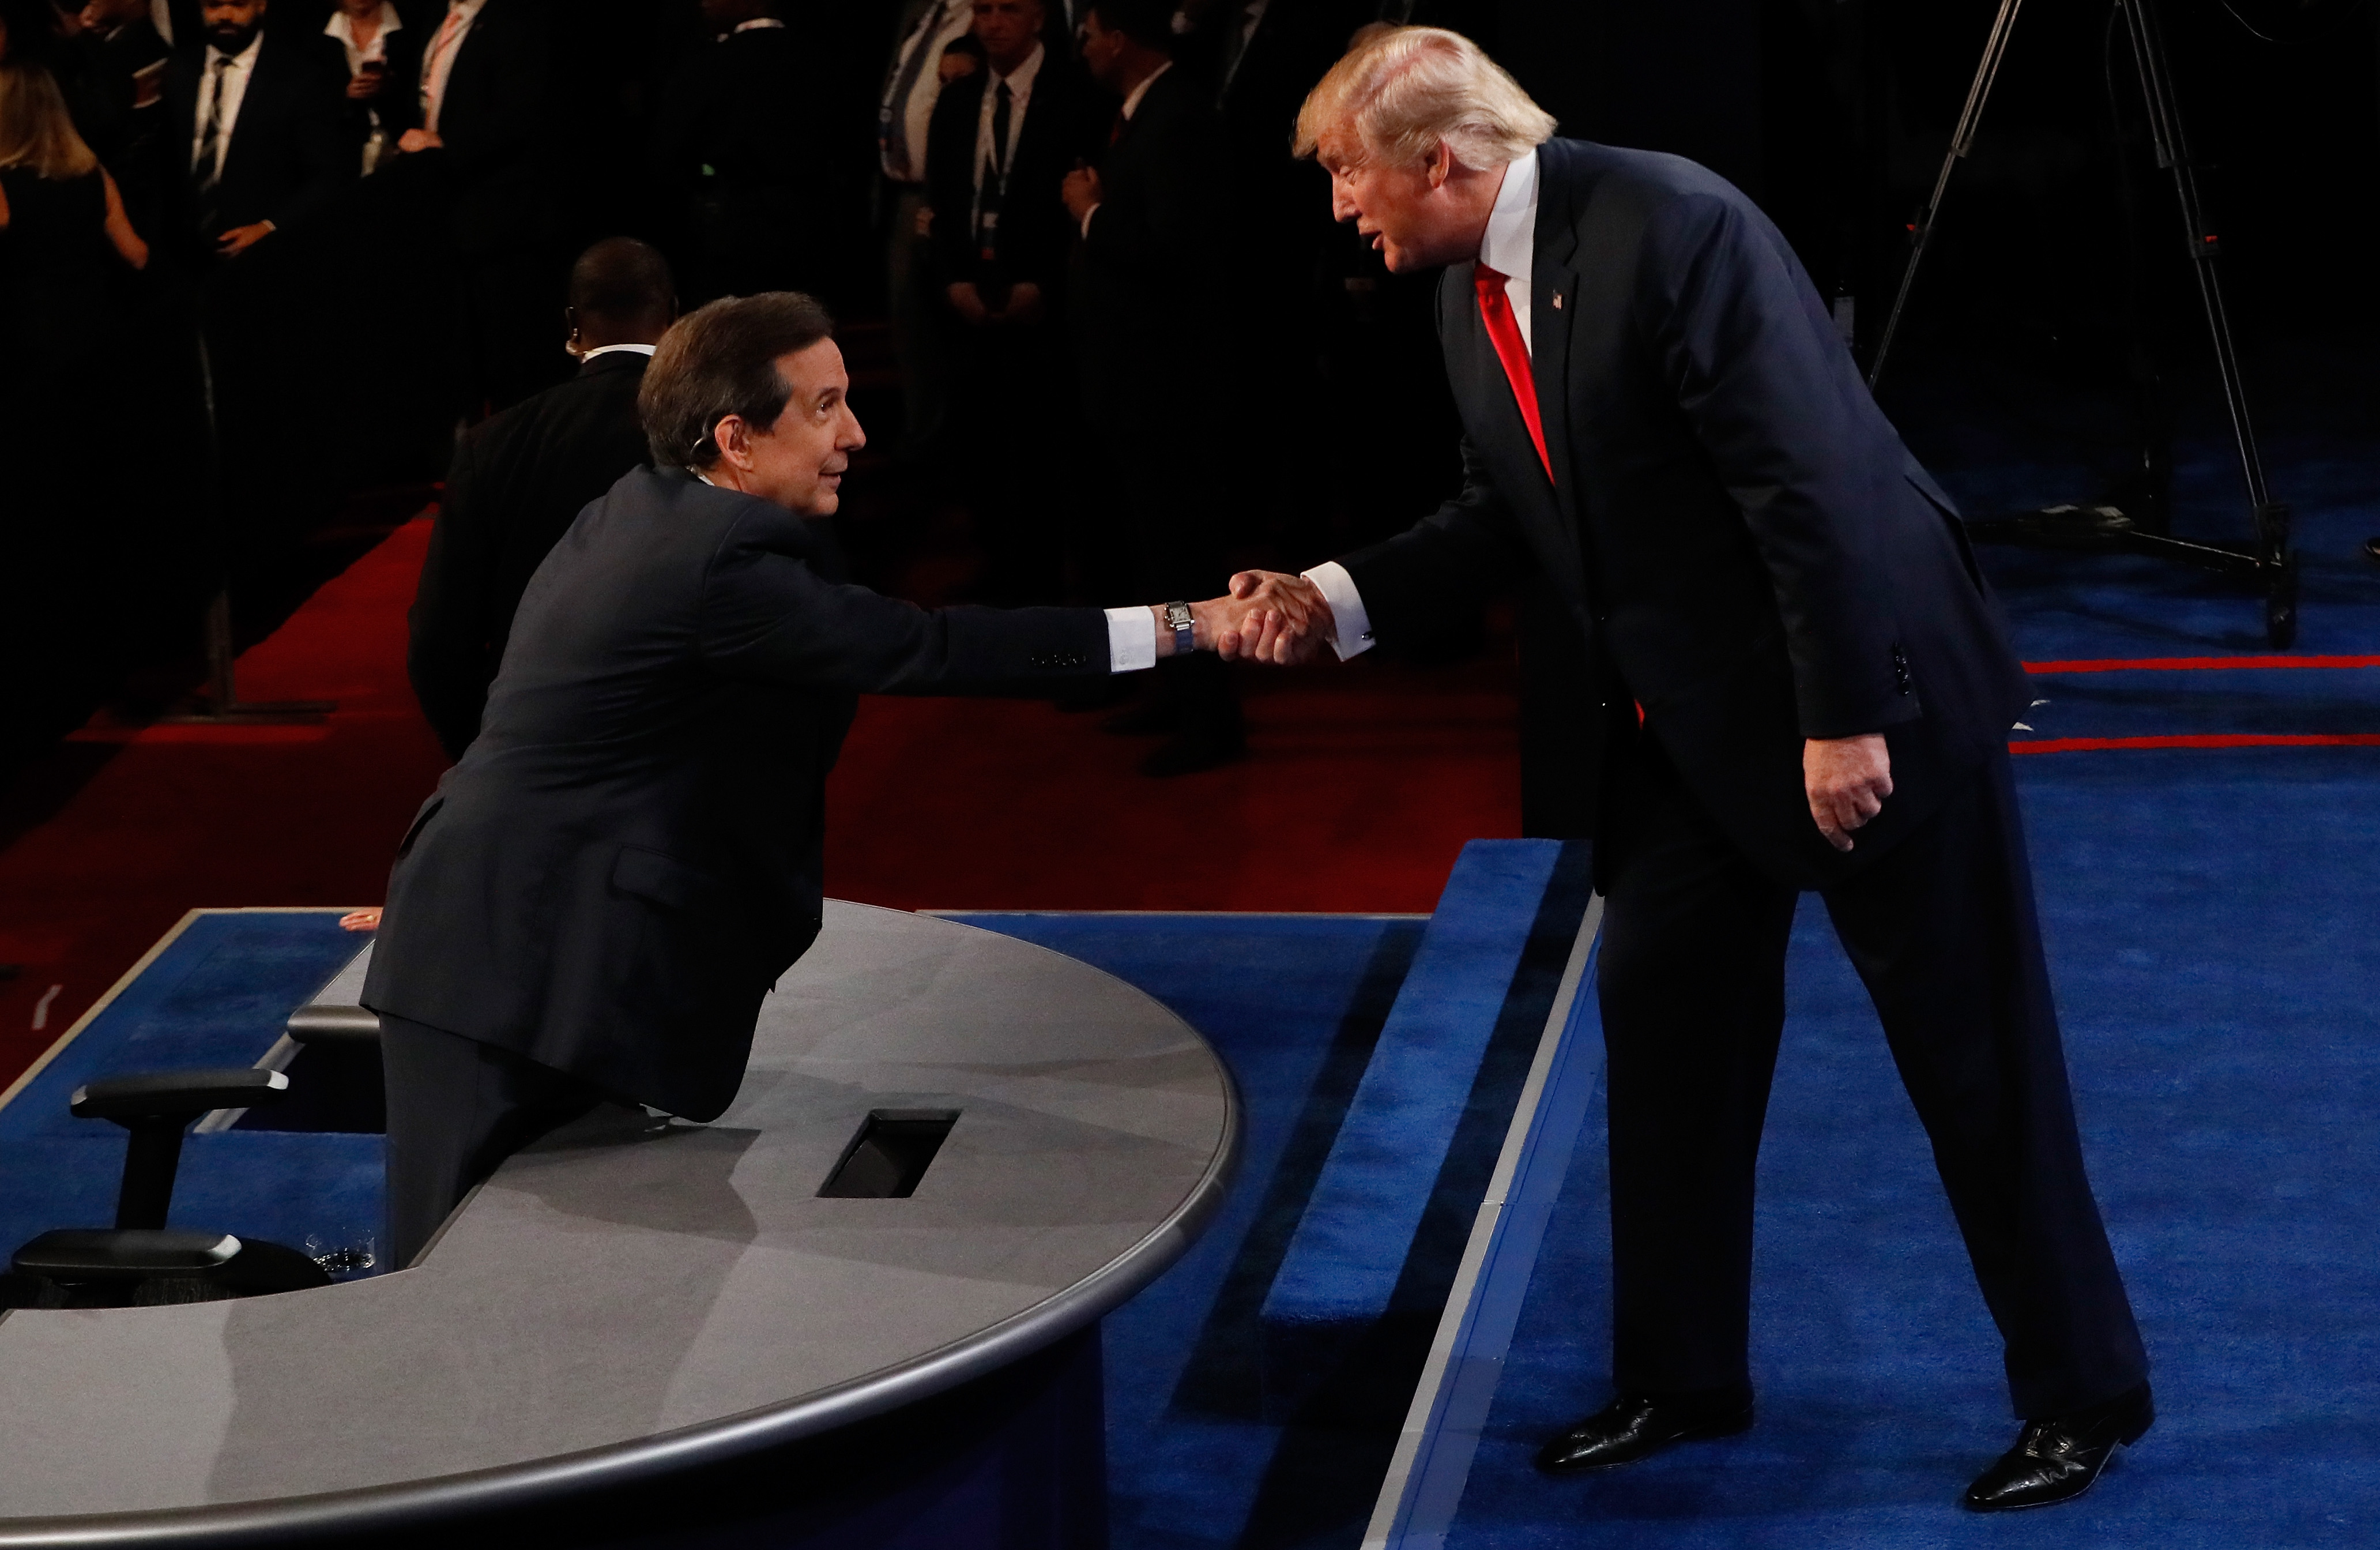 Republican presidential nominee Donald Trump shakes hands with Fox News anchor and moderator Chris Wallace after the third U.S. presidential debate at the Thomas & Mack Center on October 19, 2016 in Las Vegas, Nevada.